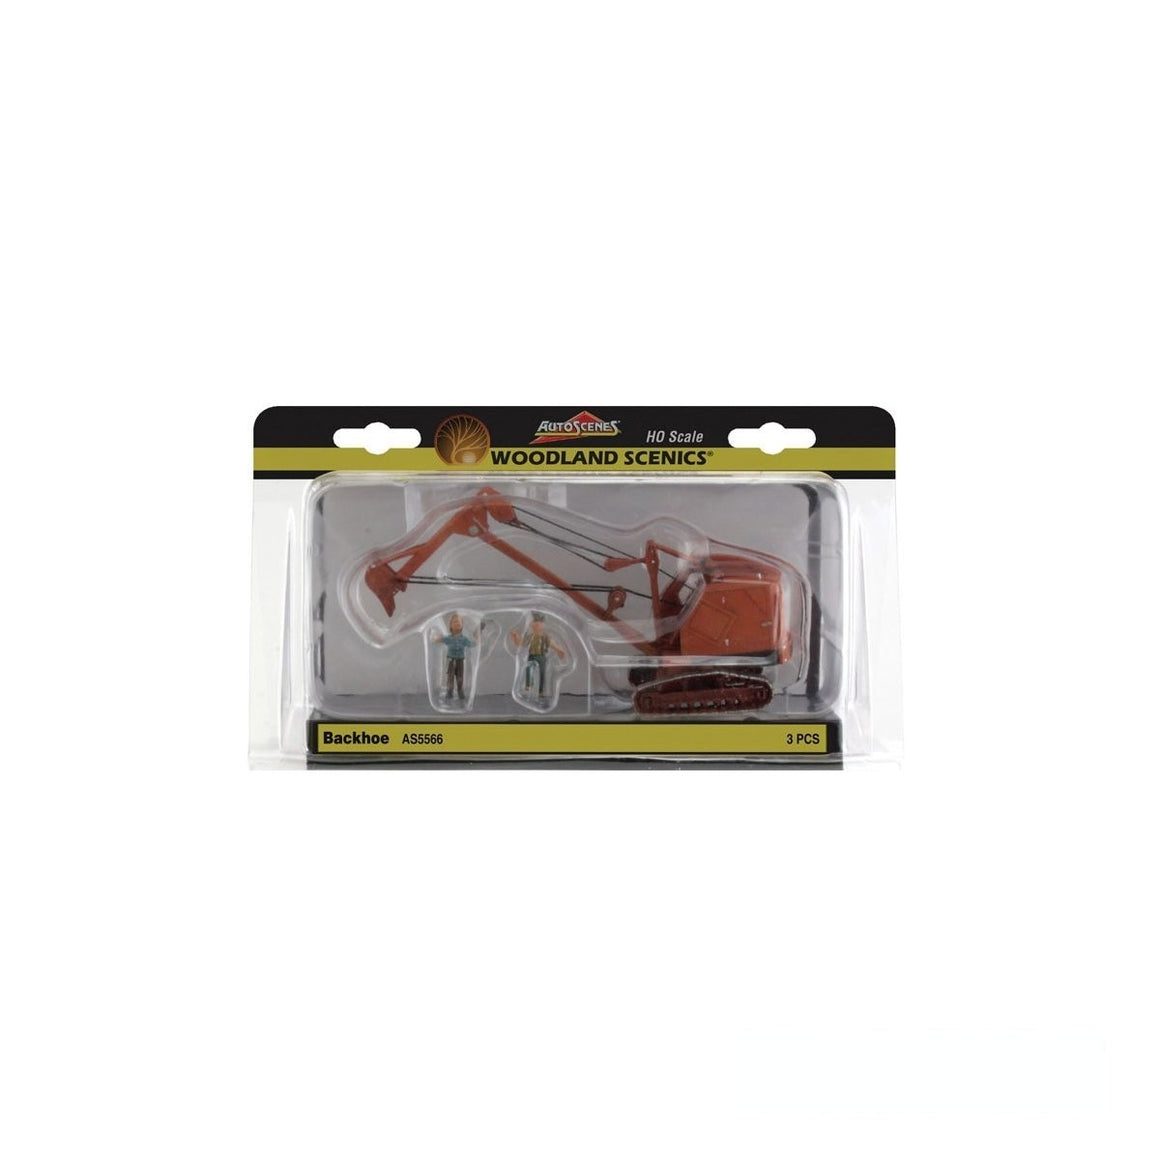 HO Scale: Backhoe